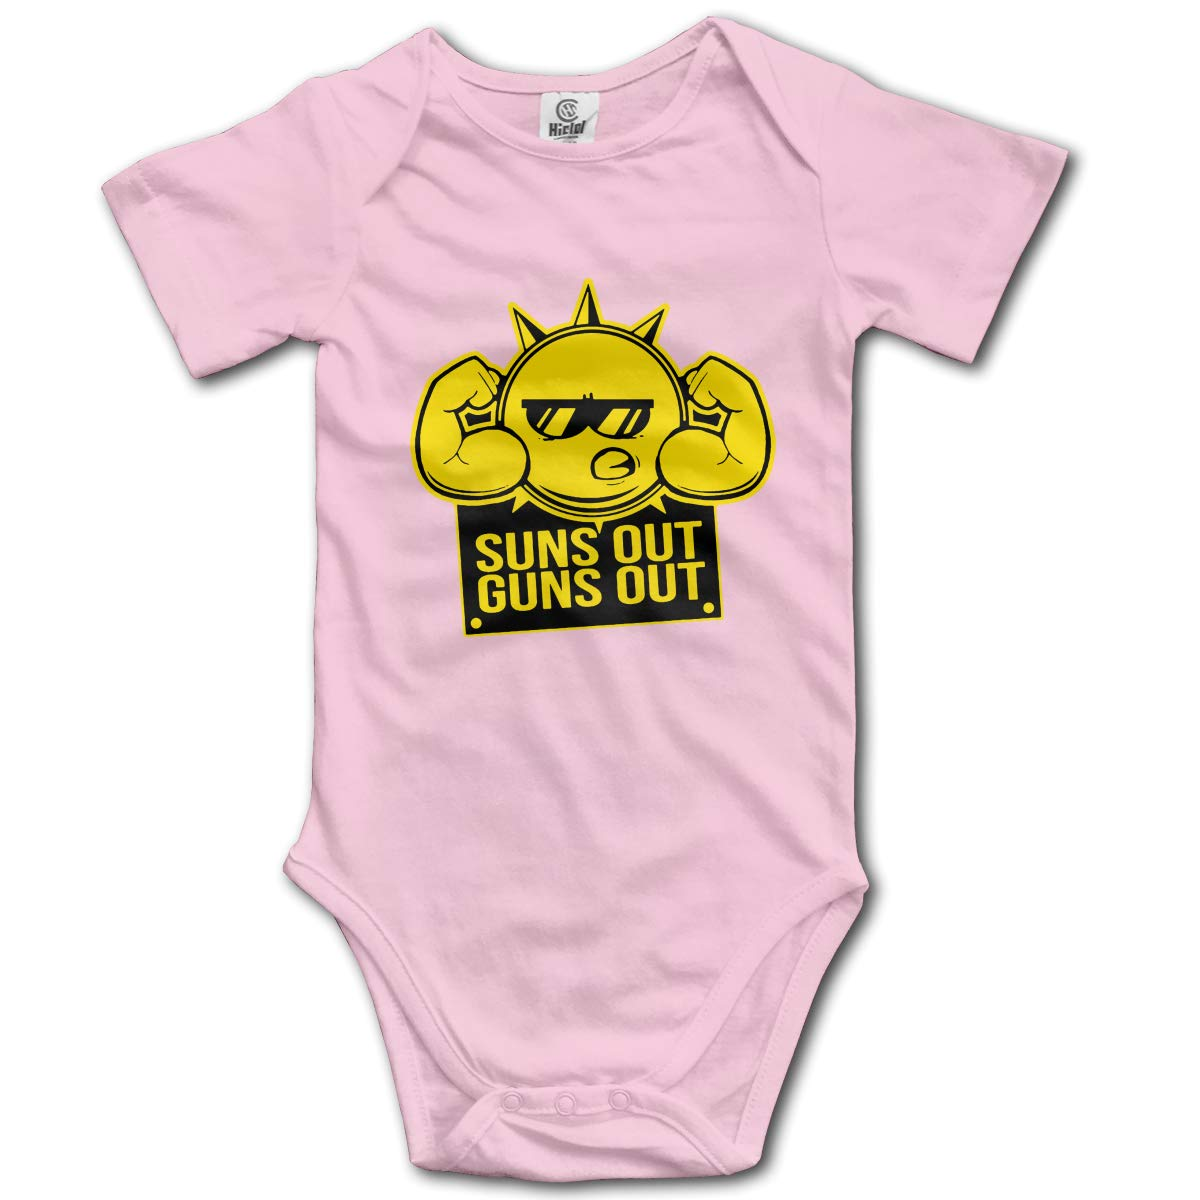 Suns Out Guns Out Toddler Baby Romper Summer Short Sleeve Jumpsuit Funny Gift